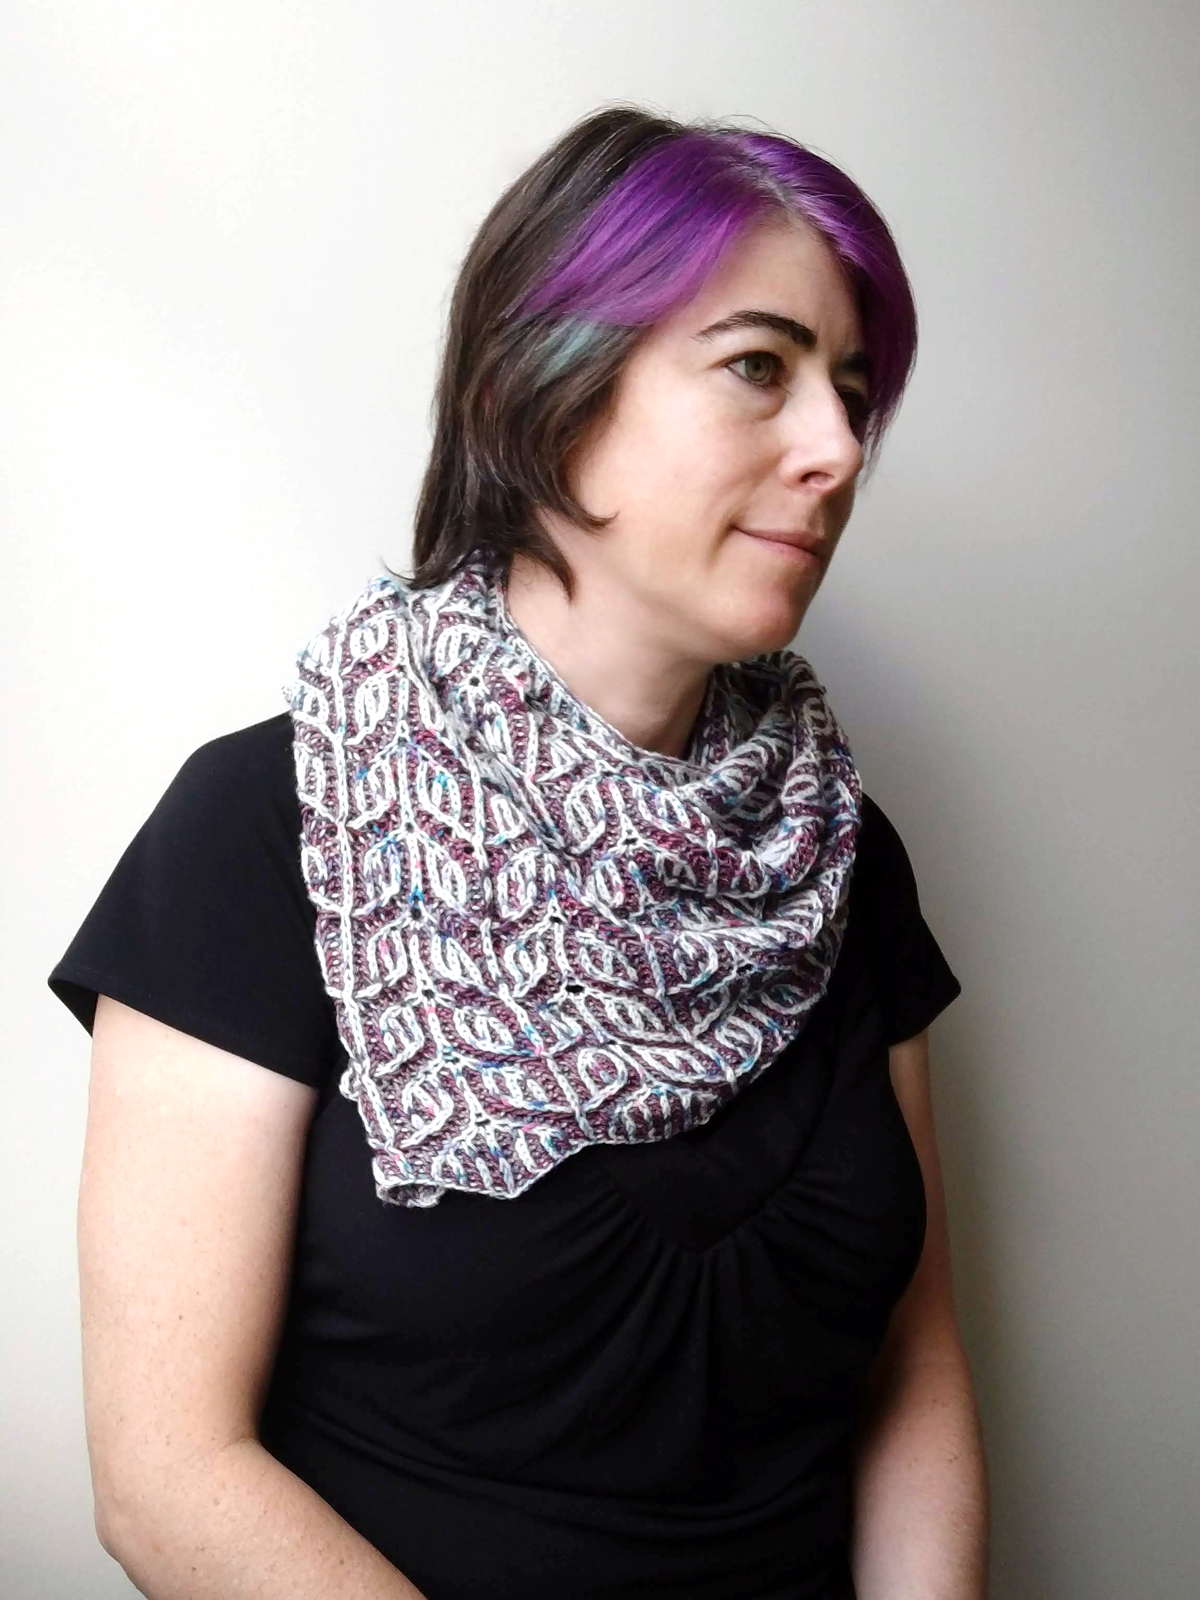 Pirate modeling the Sizzle Pop Shawl